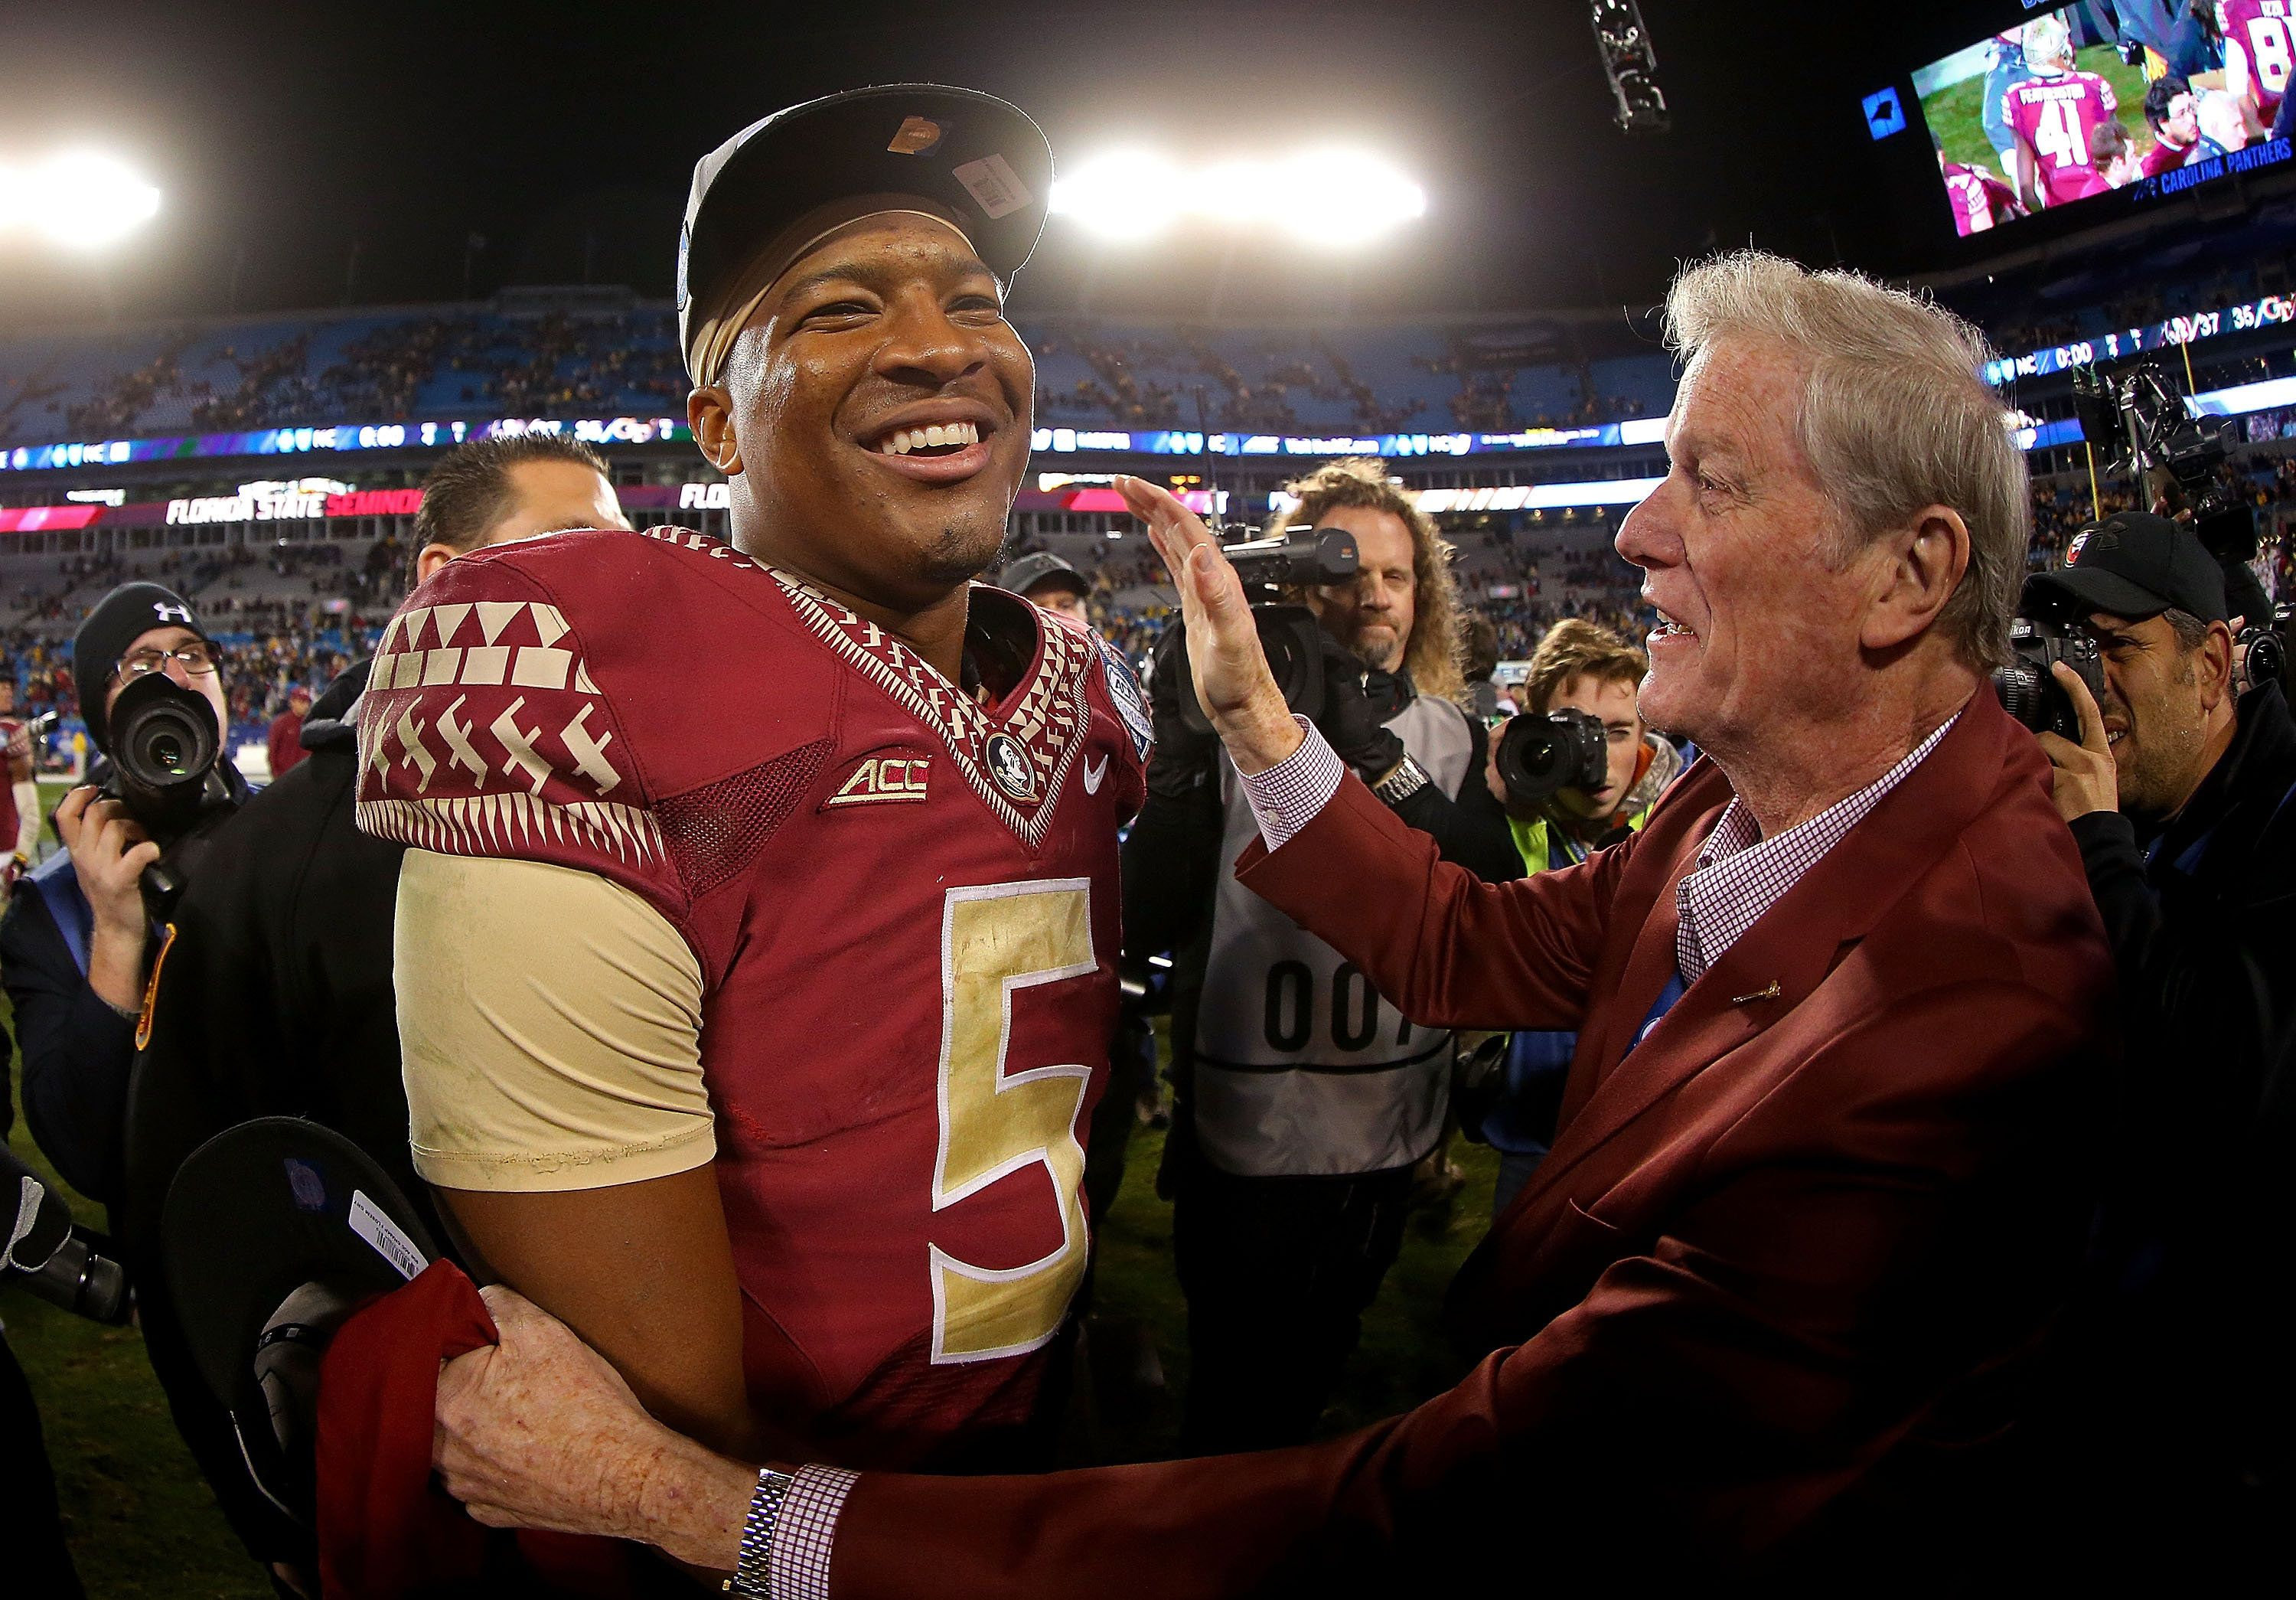 CHARLOTTE, NC - DECEMBER 06: Jameis Winston #5 of the Florida State Seminoles and university presiden John Thrasher congratulate each other after their 37-35 victory over the Georgia Tech Yellow Jackets at the ACC Championship game on December 6, 2014 in Charlotte, North Carolina.  (Photo by Mike Ehrmann/Getty Images)